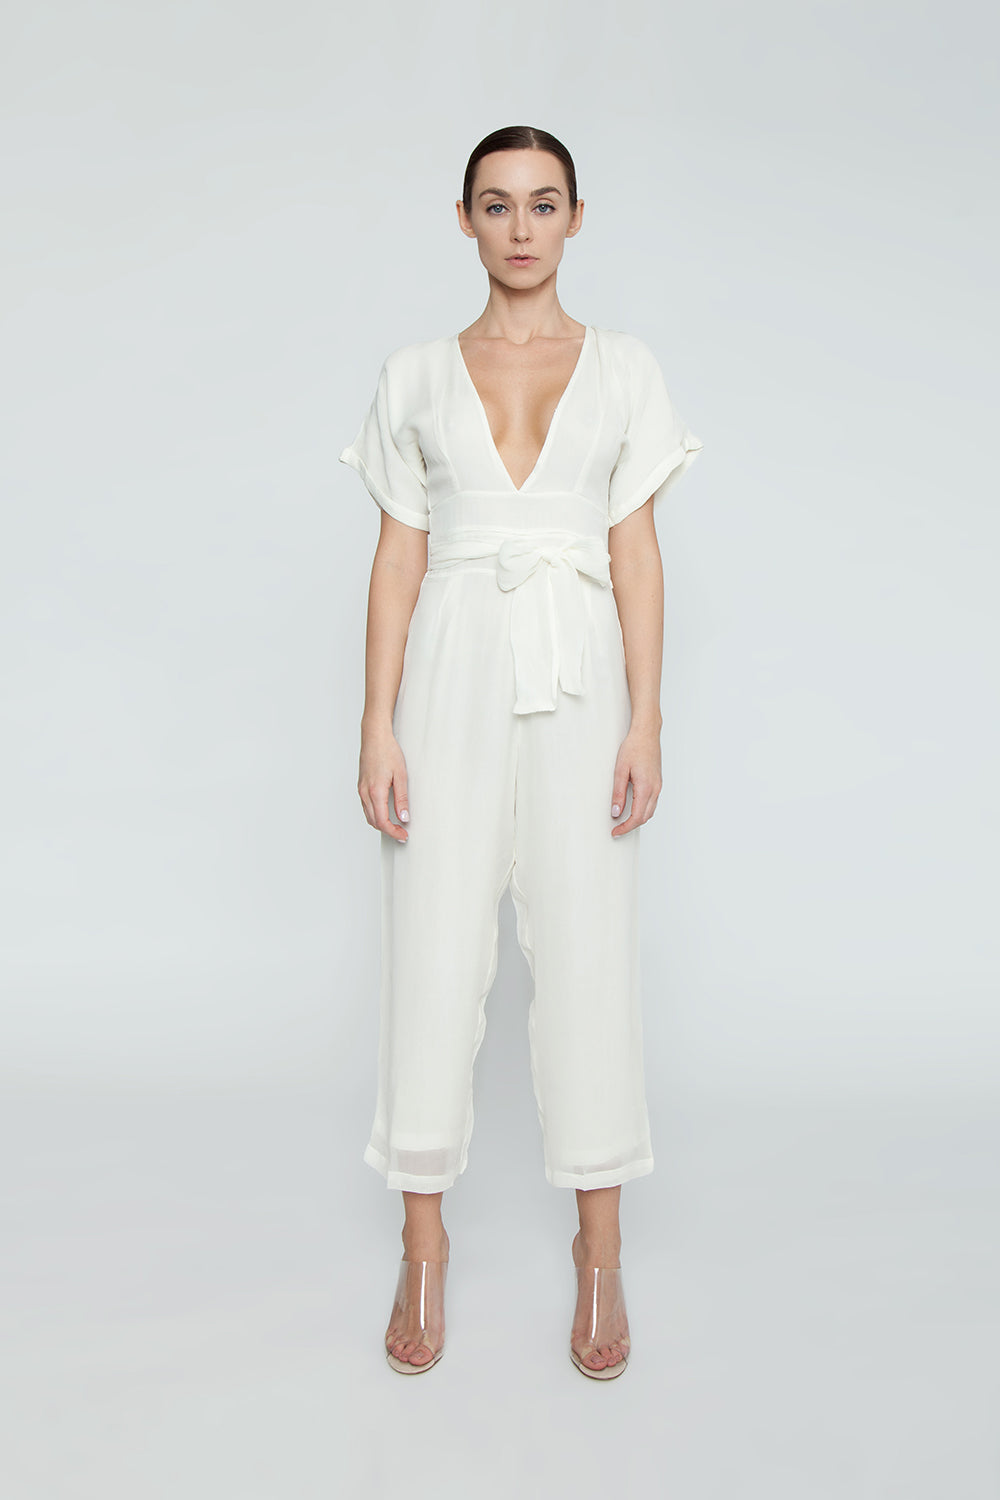 Havana Plunging Belted Jumpsuit - Cream White